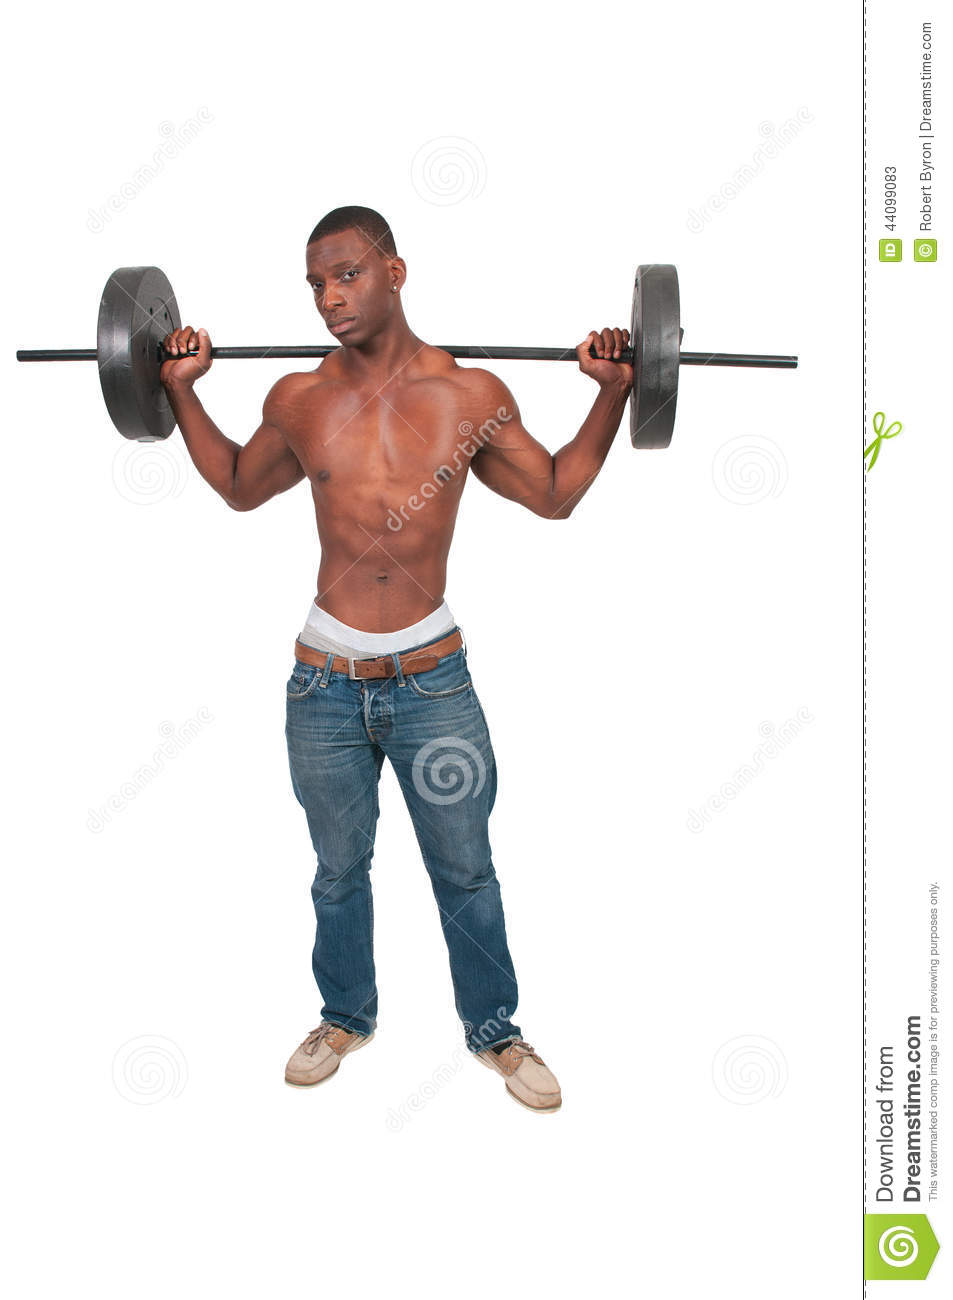 Black Man Lifting Weight Stock Photo - Image: 44099083